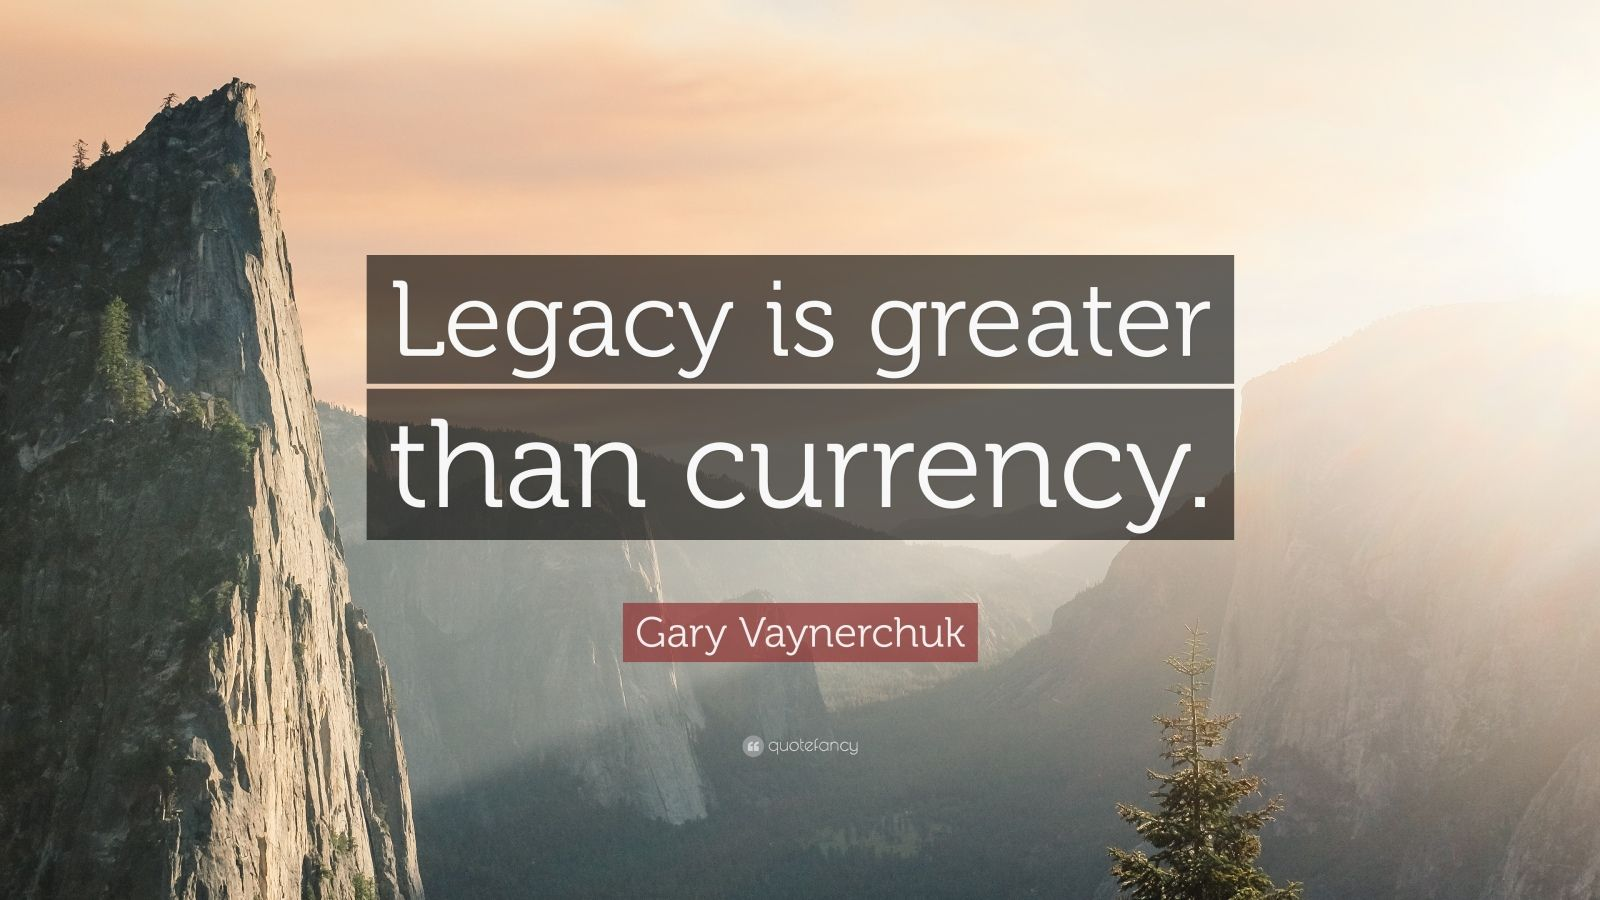 Steve Jobs Motivational Quotes Wallpaper Gary Vaynerchuk Quote Legacy Is Greater Than Currency